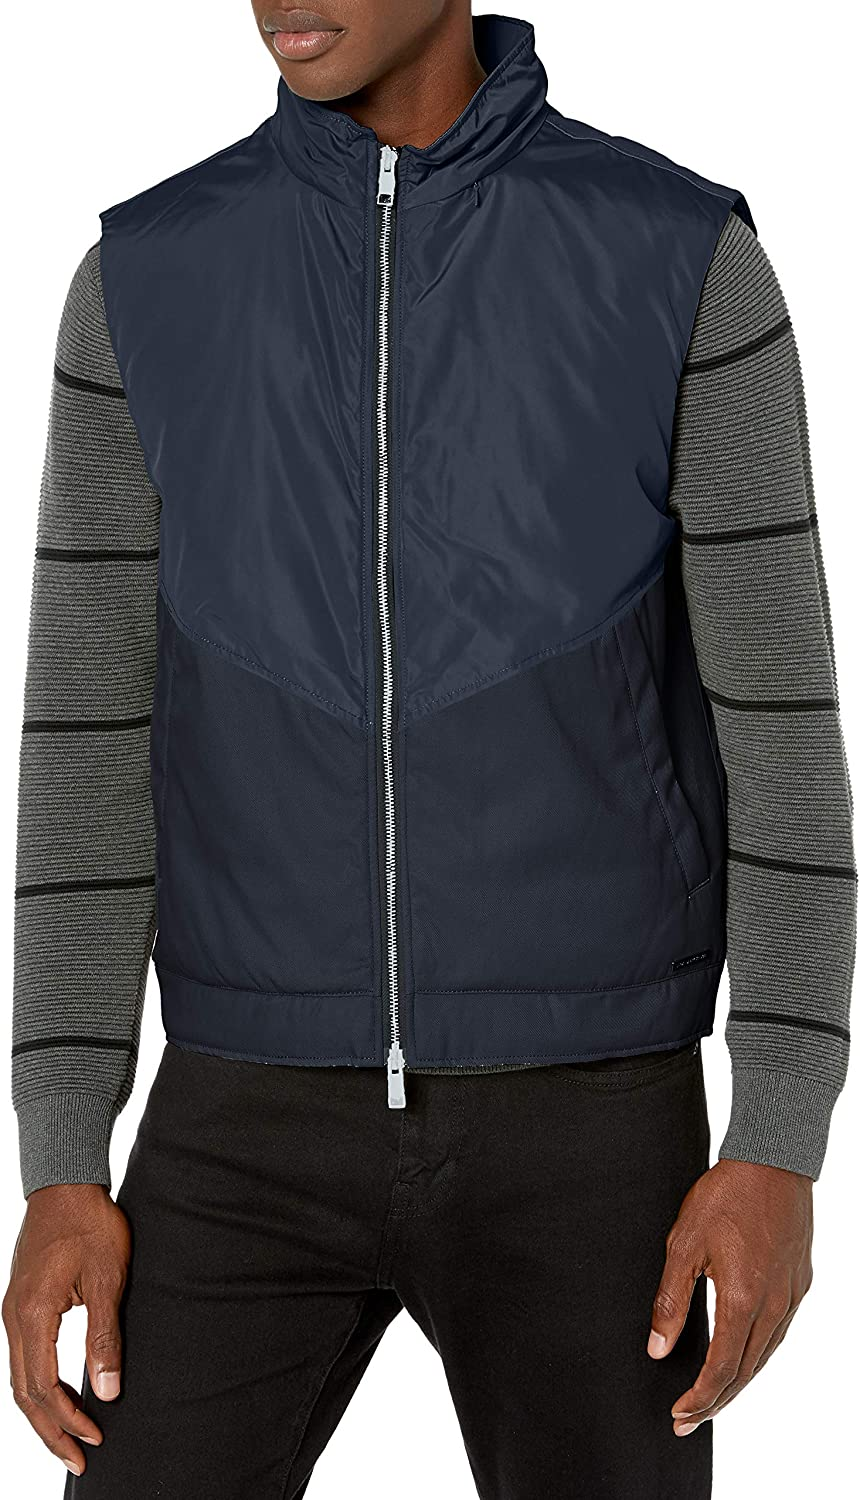 A|X Armani Exchange Men's Paneled Zip Up Polyester Vest